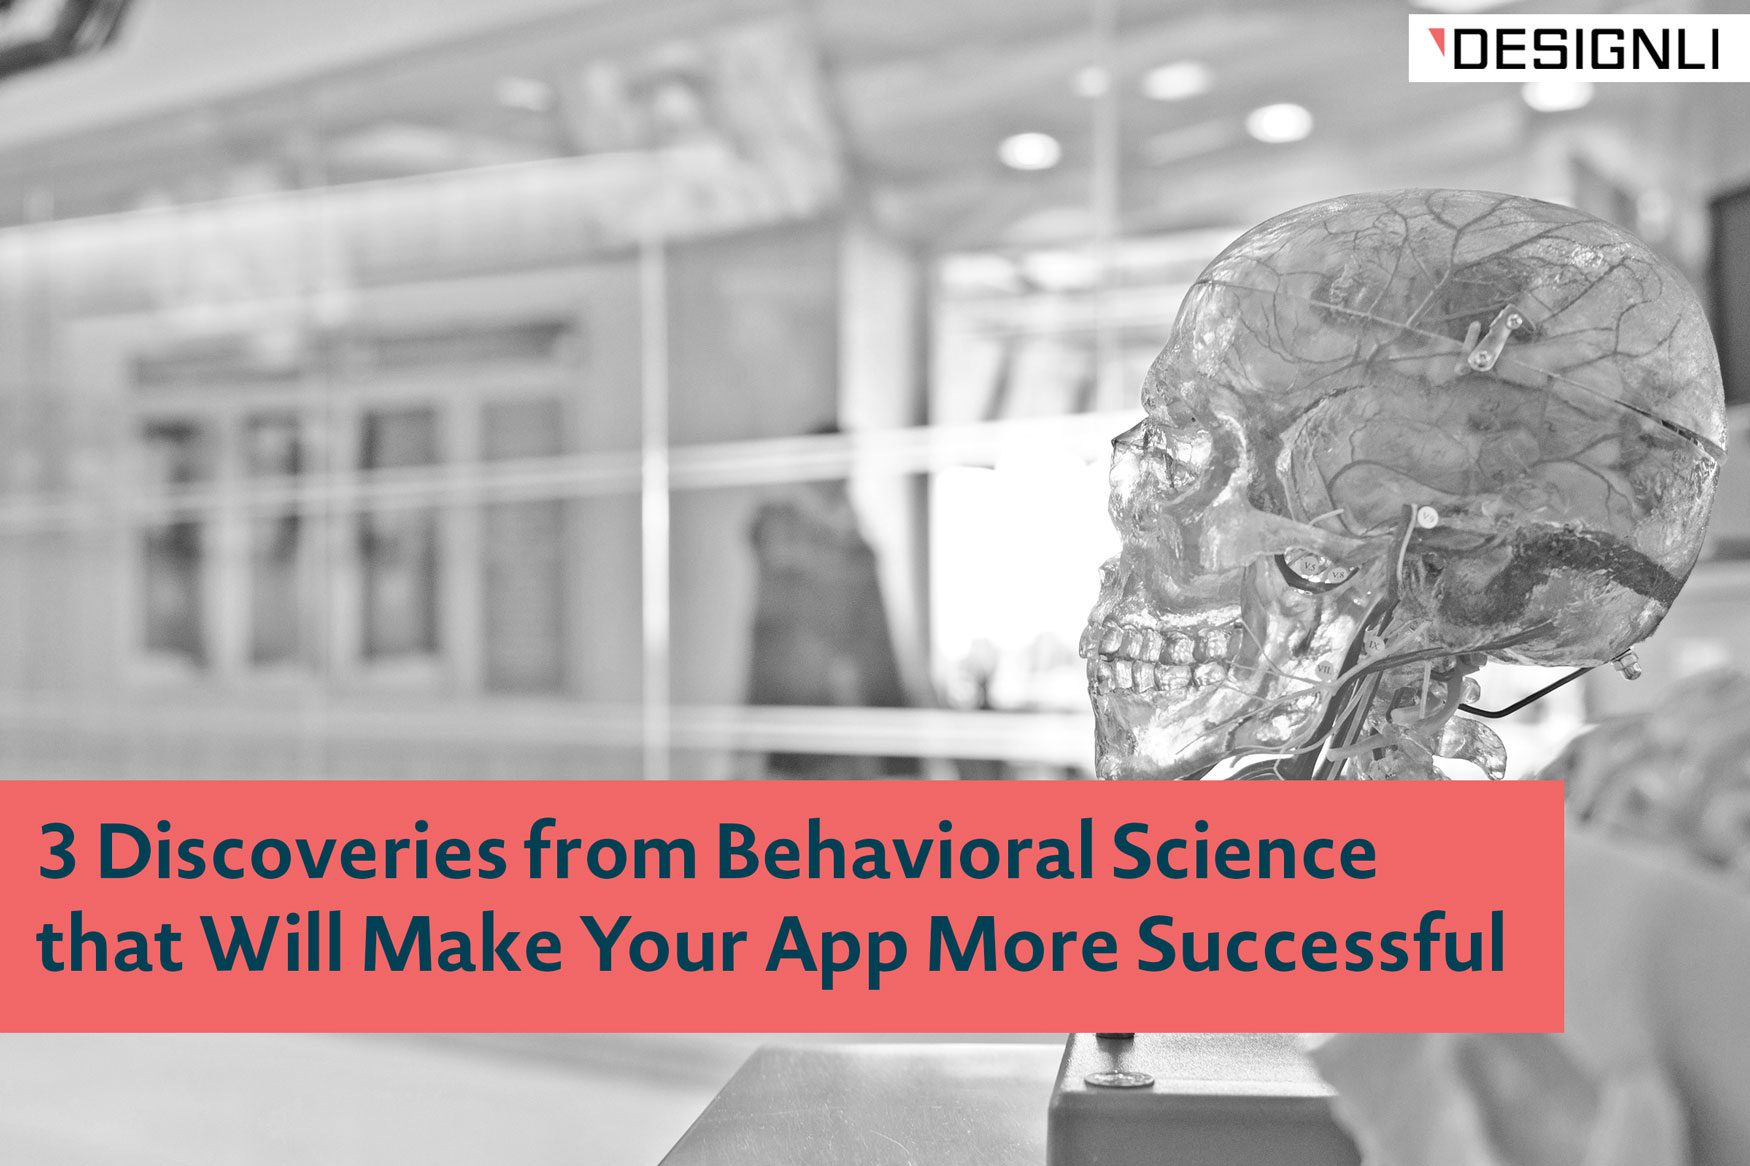 3 Discoveries from Behavioral Science that Will Make Your App More Successful